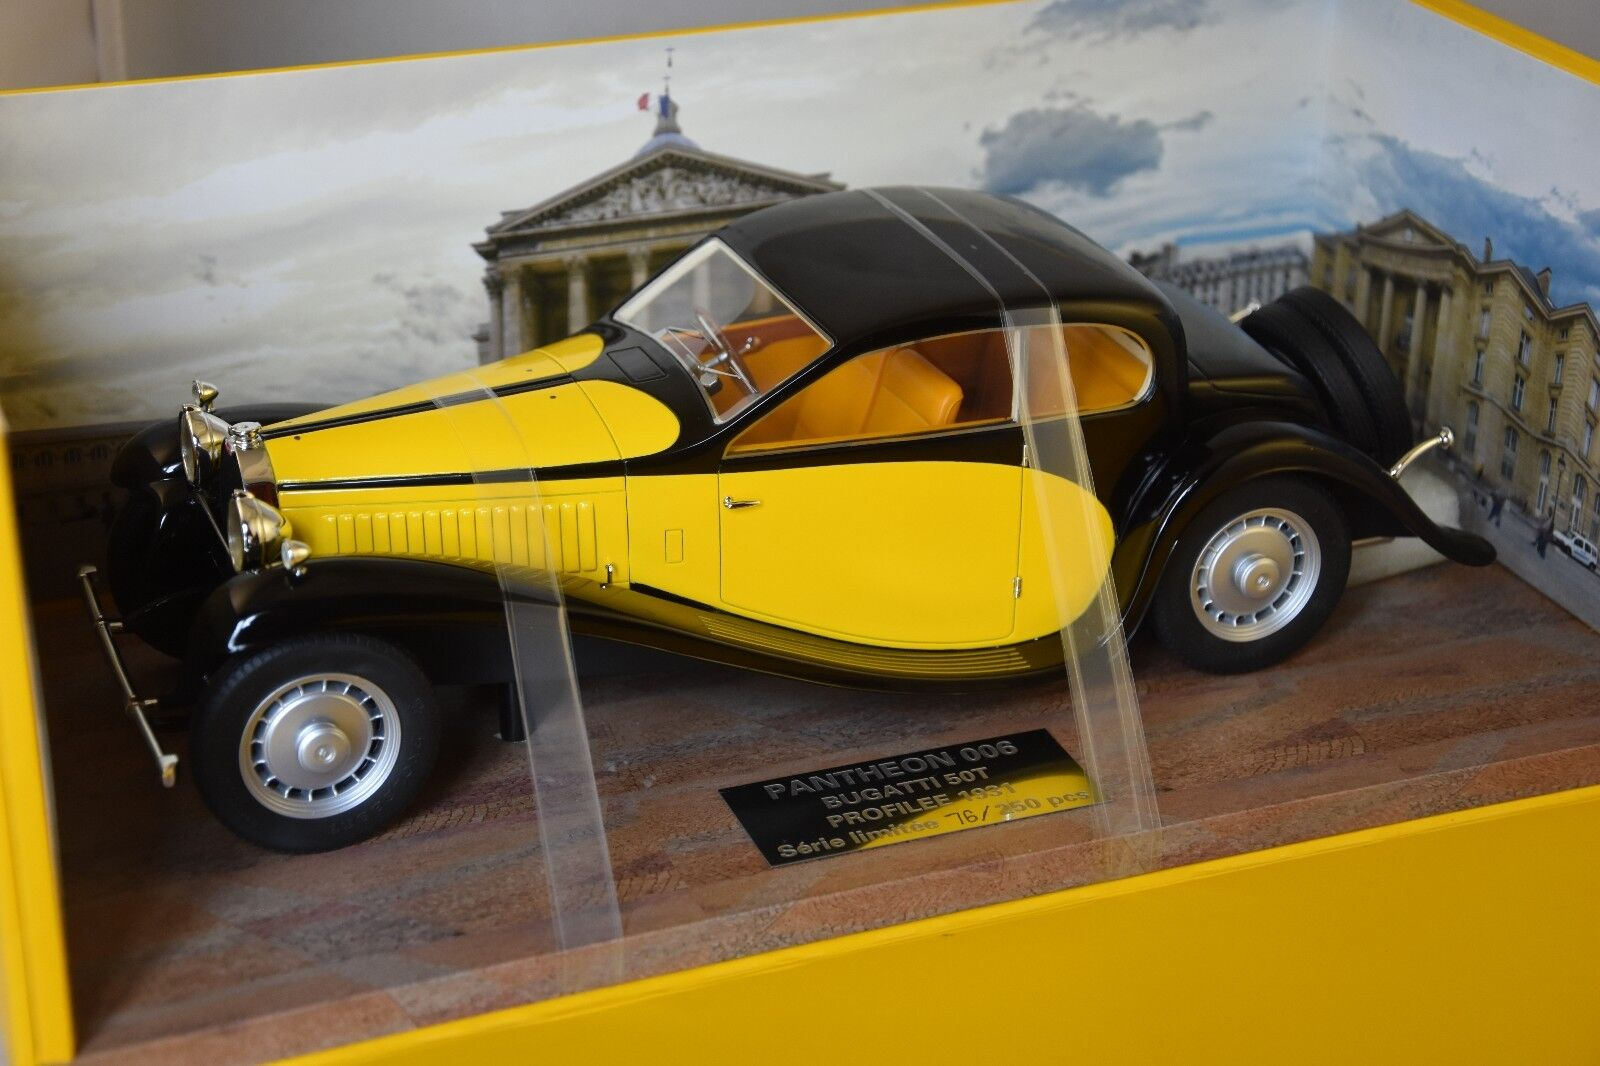 PANTHEON 006 - BUGATTI TYPE 50 1931 PROFILE giallo   nero 1 18